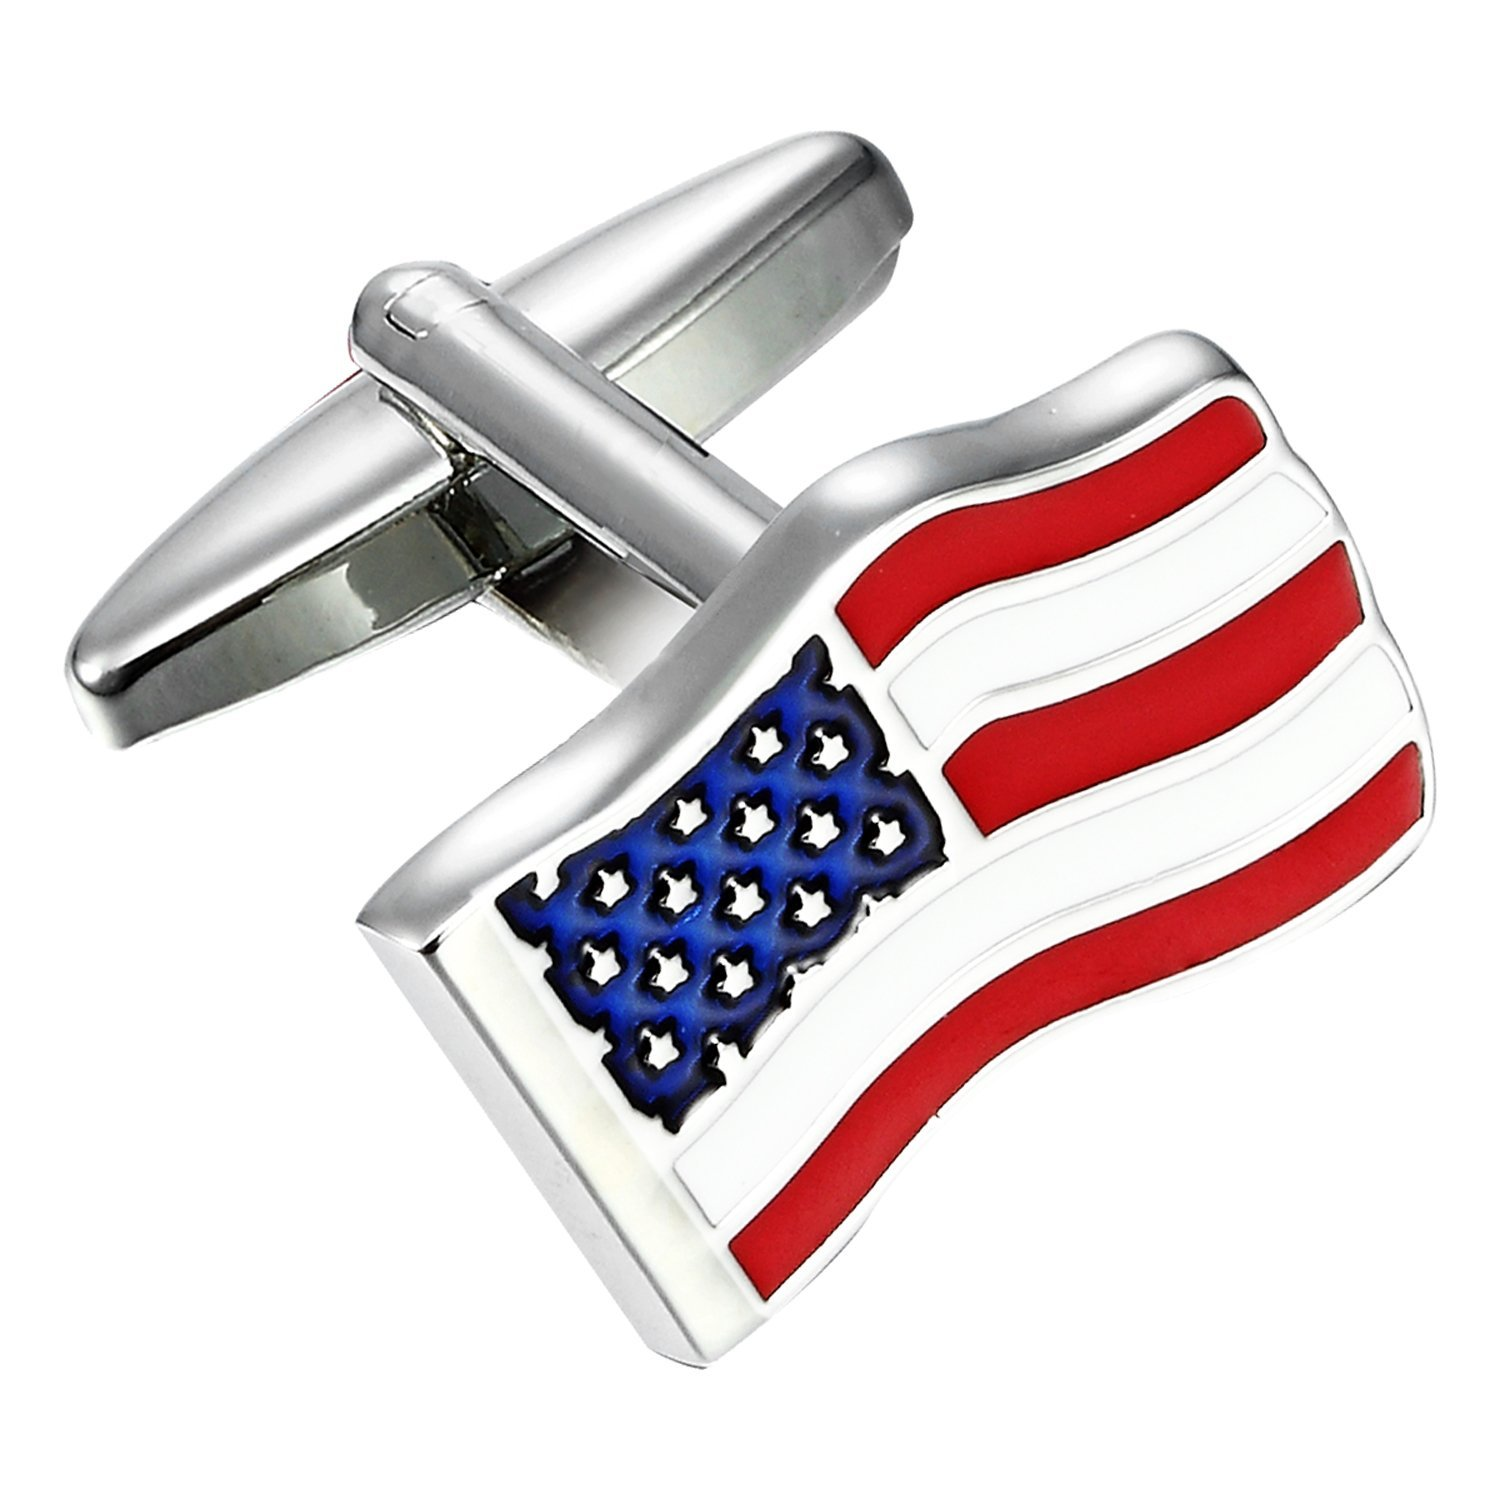 Urban Jewelry Loyal Patriot Stainless Steel USA Flag Men's Cufflinks (Red, Blue, White, Silver) by Urban Jewelry (Image #1)